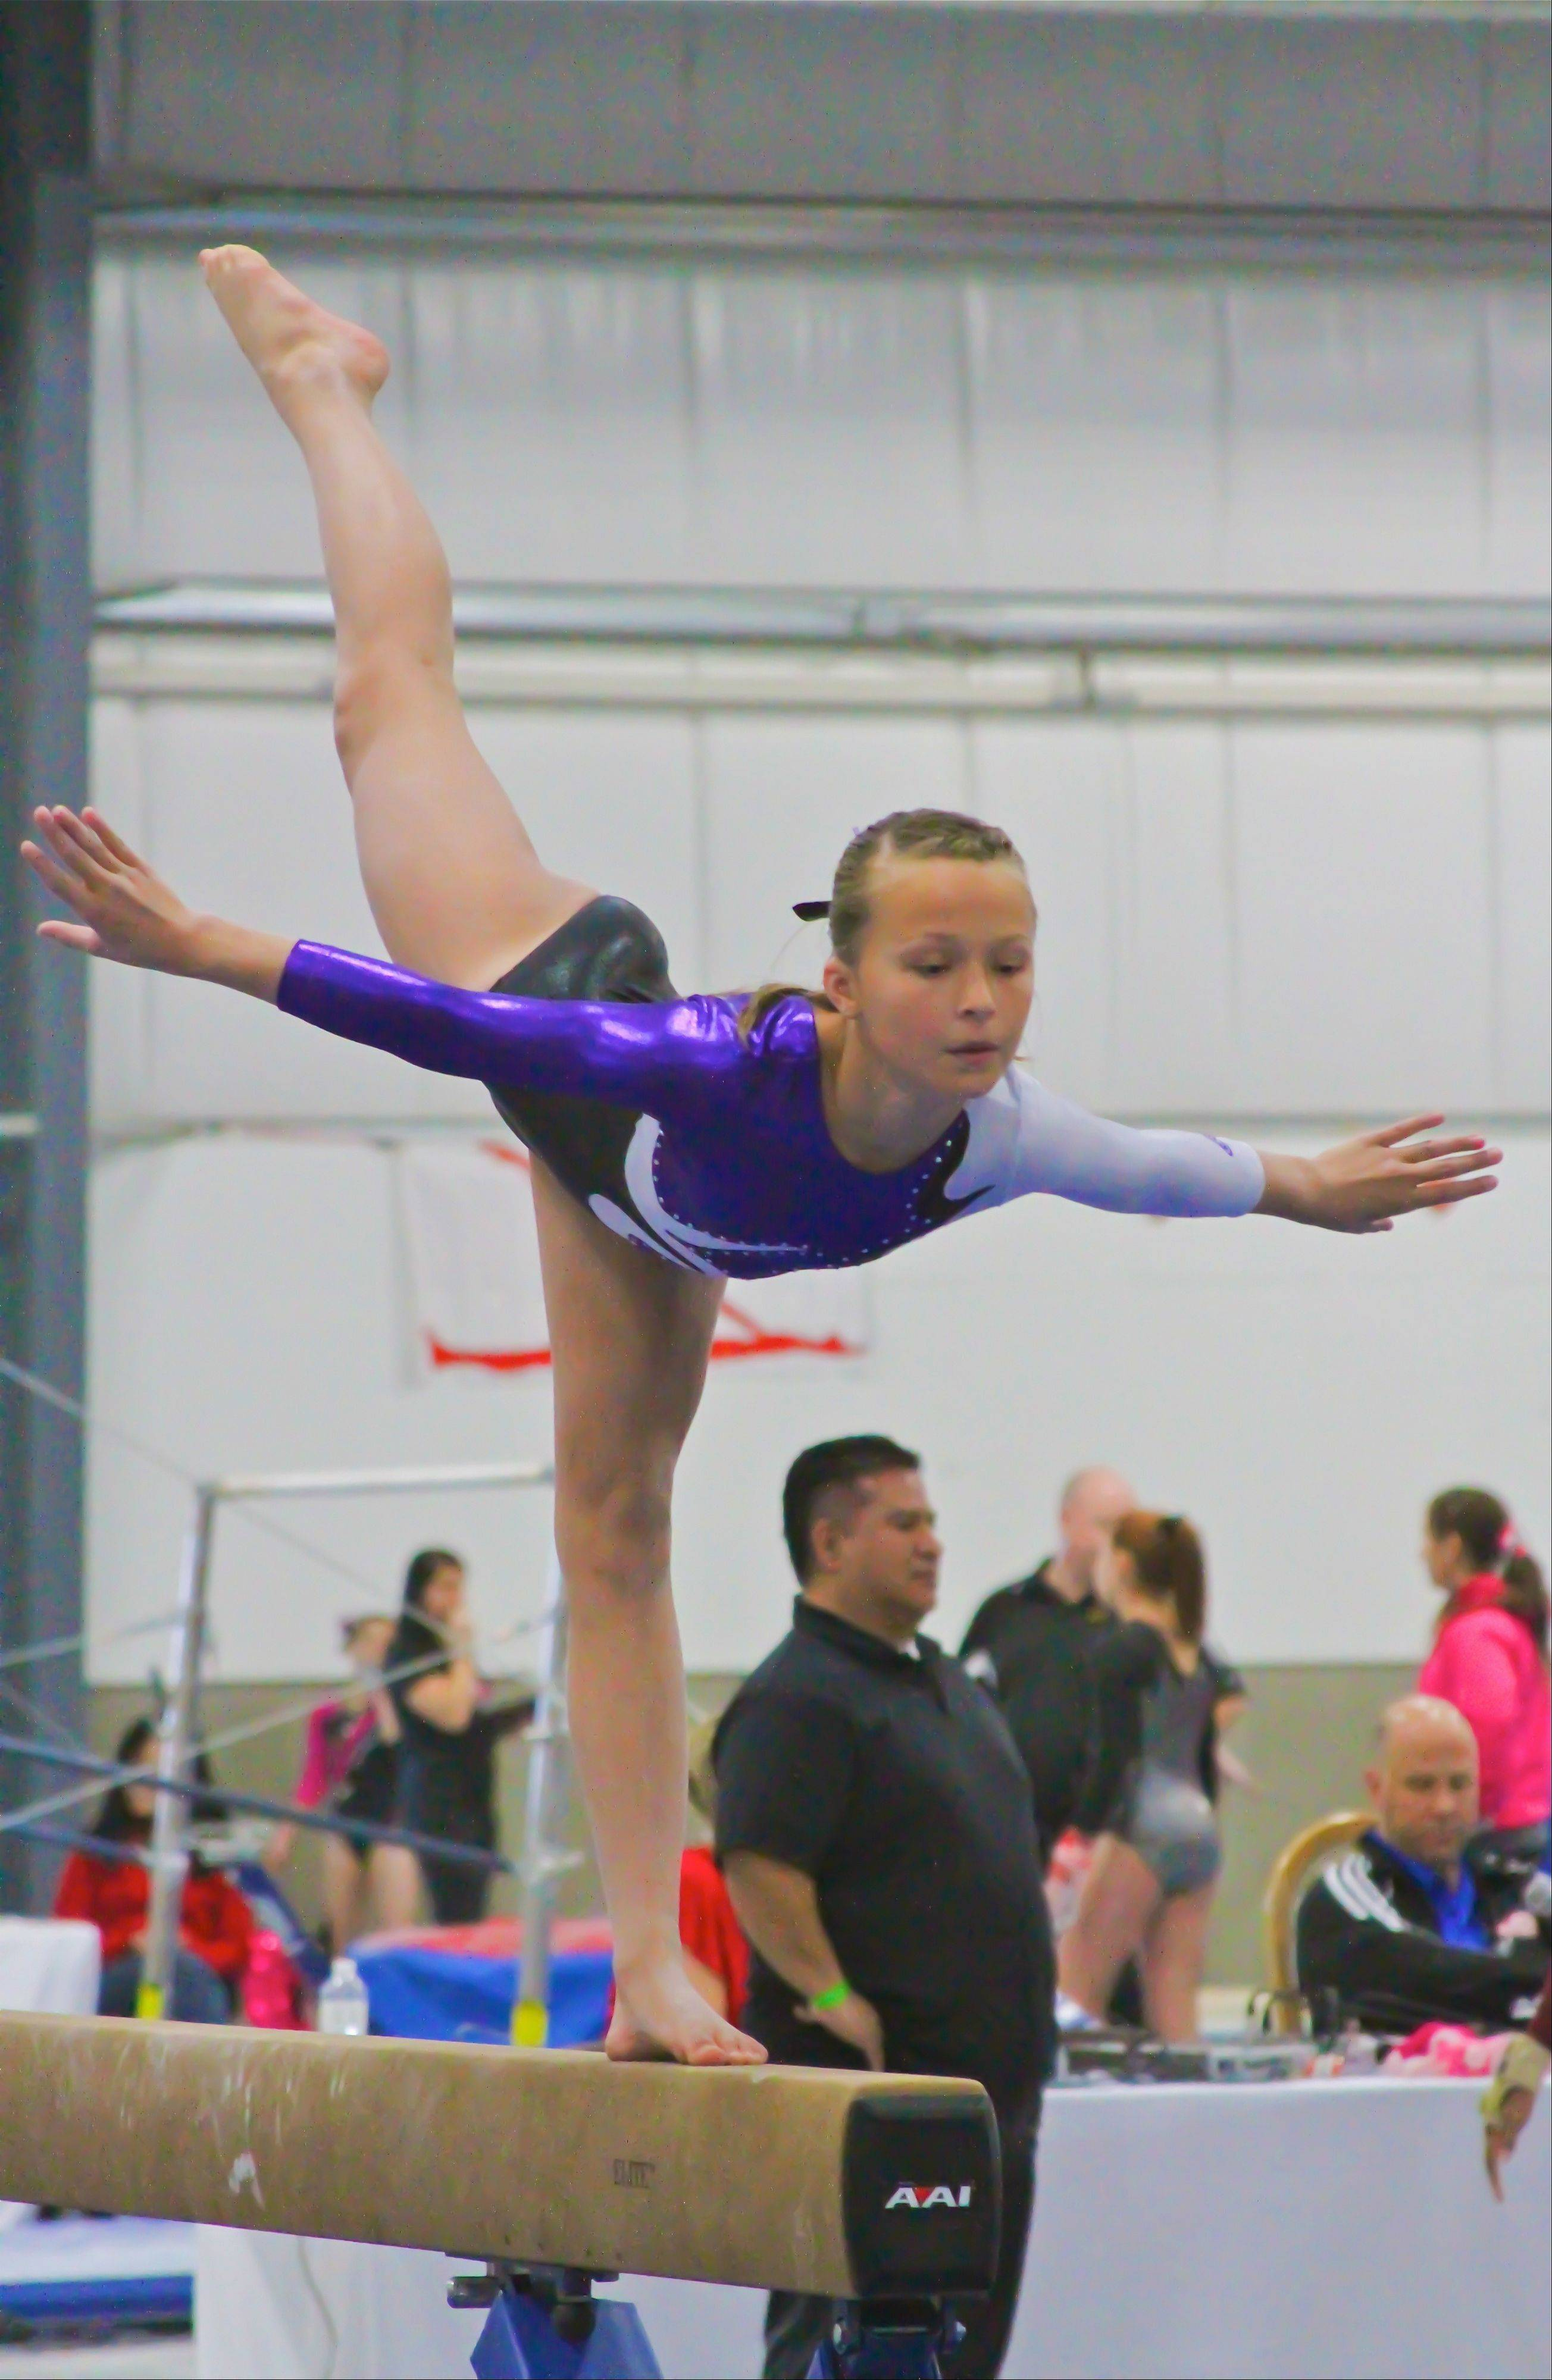 Lake Villa's Ally Weihs performs her beam routine at the recent St. Valentine's Classic meet. Ally, who competes as a Level 6 gymnast for Ultimate Gymnastics of Gurnee, took first place on beam in the 11-year-old age group, scoring 9.45.